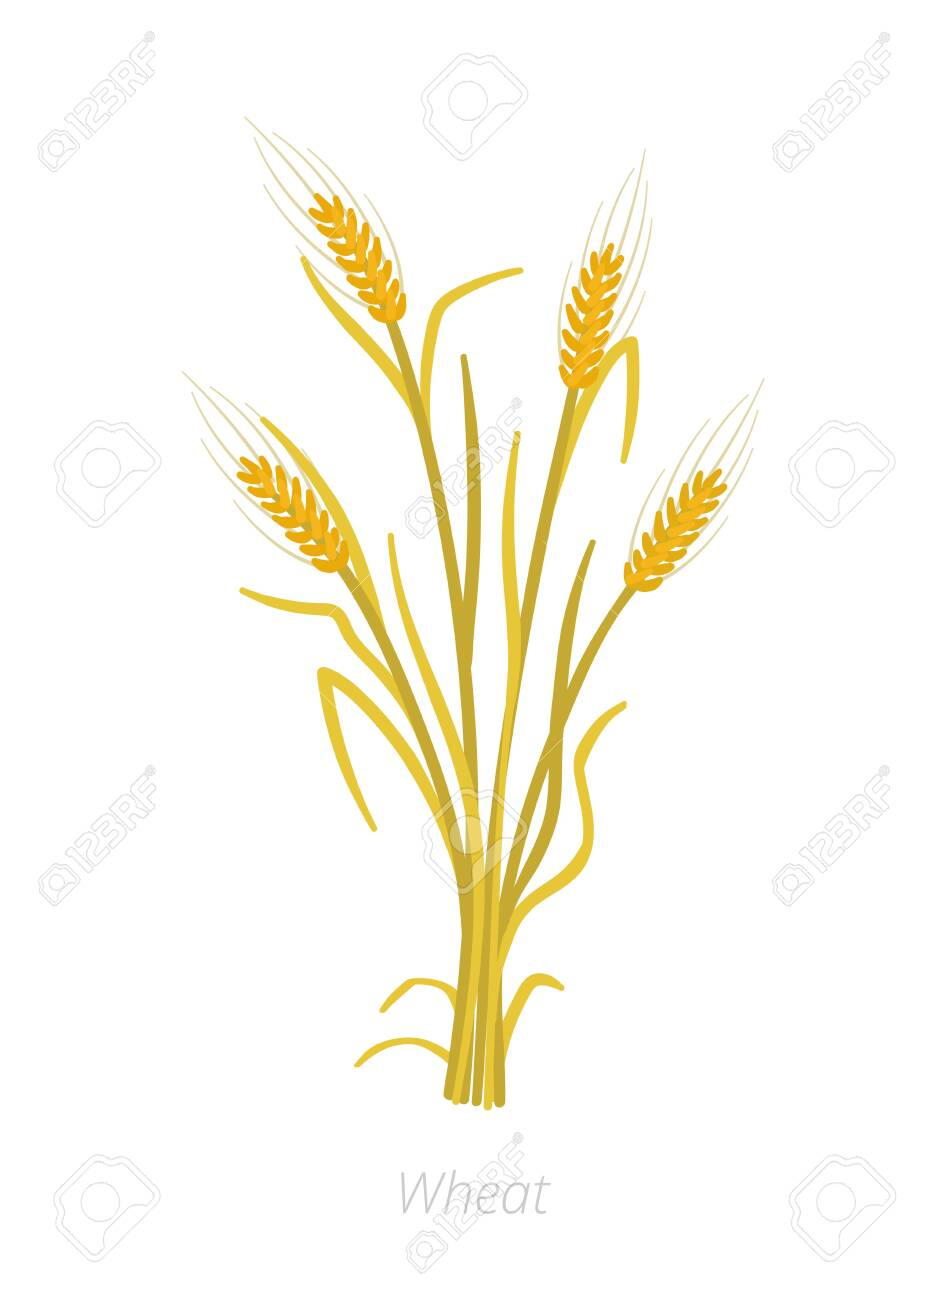 Rye, barley or wheat plant ripe. Vector illustration. Secale...